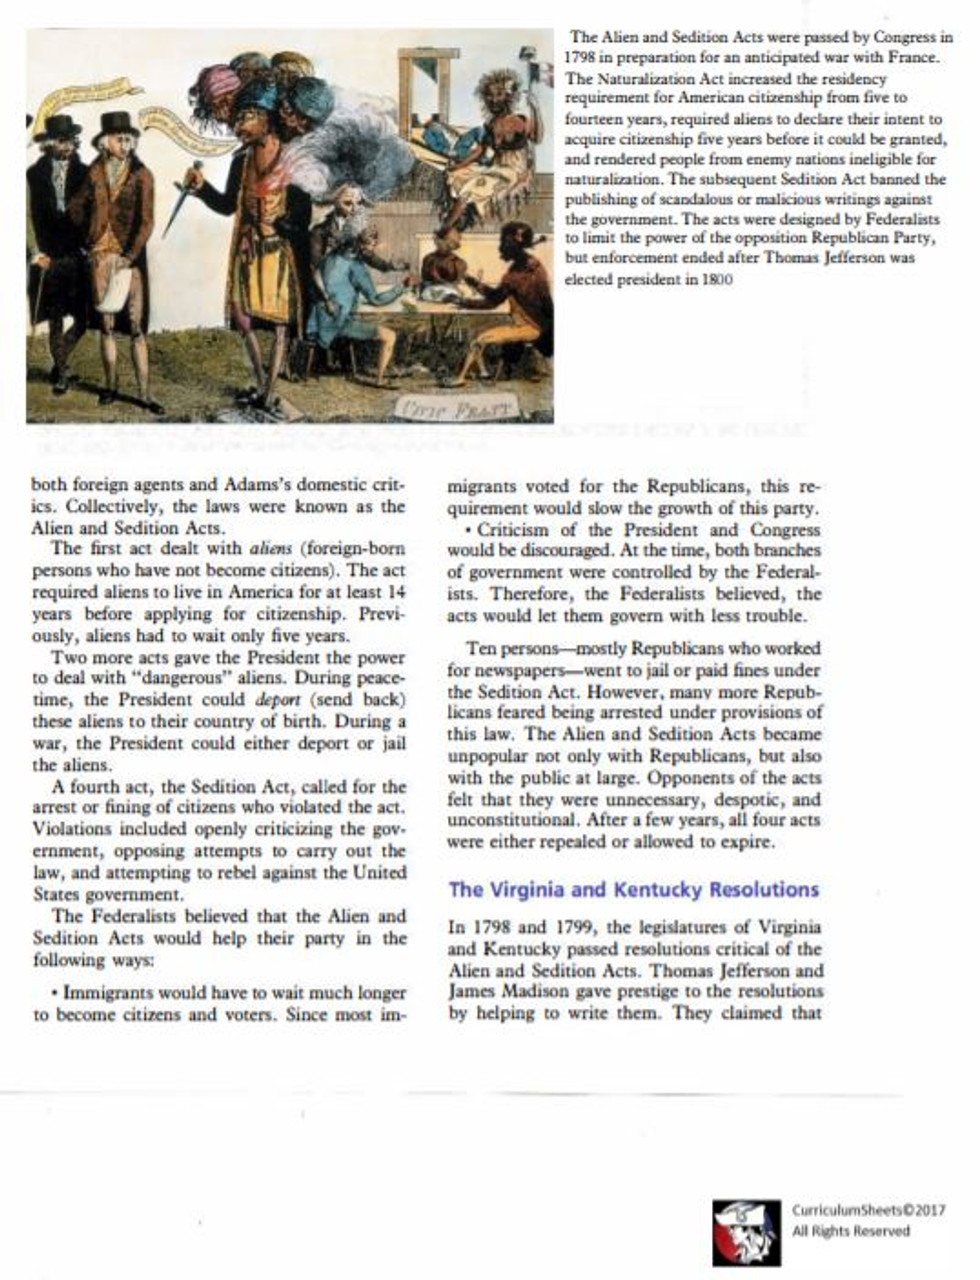 John Adams and the Federalists